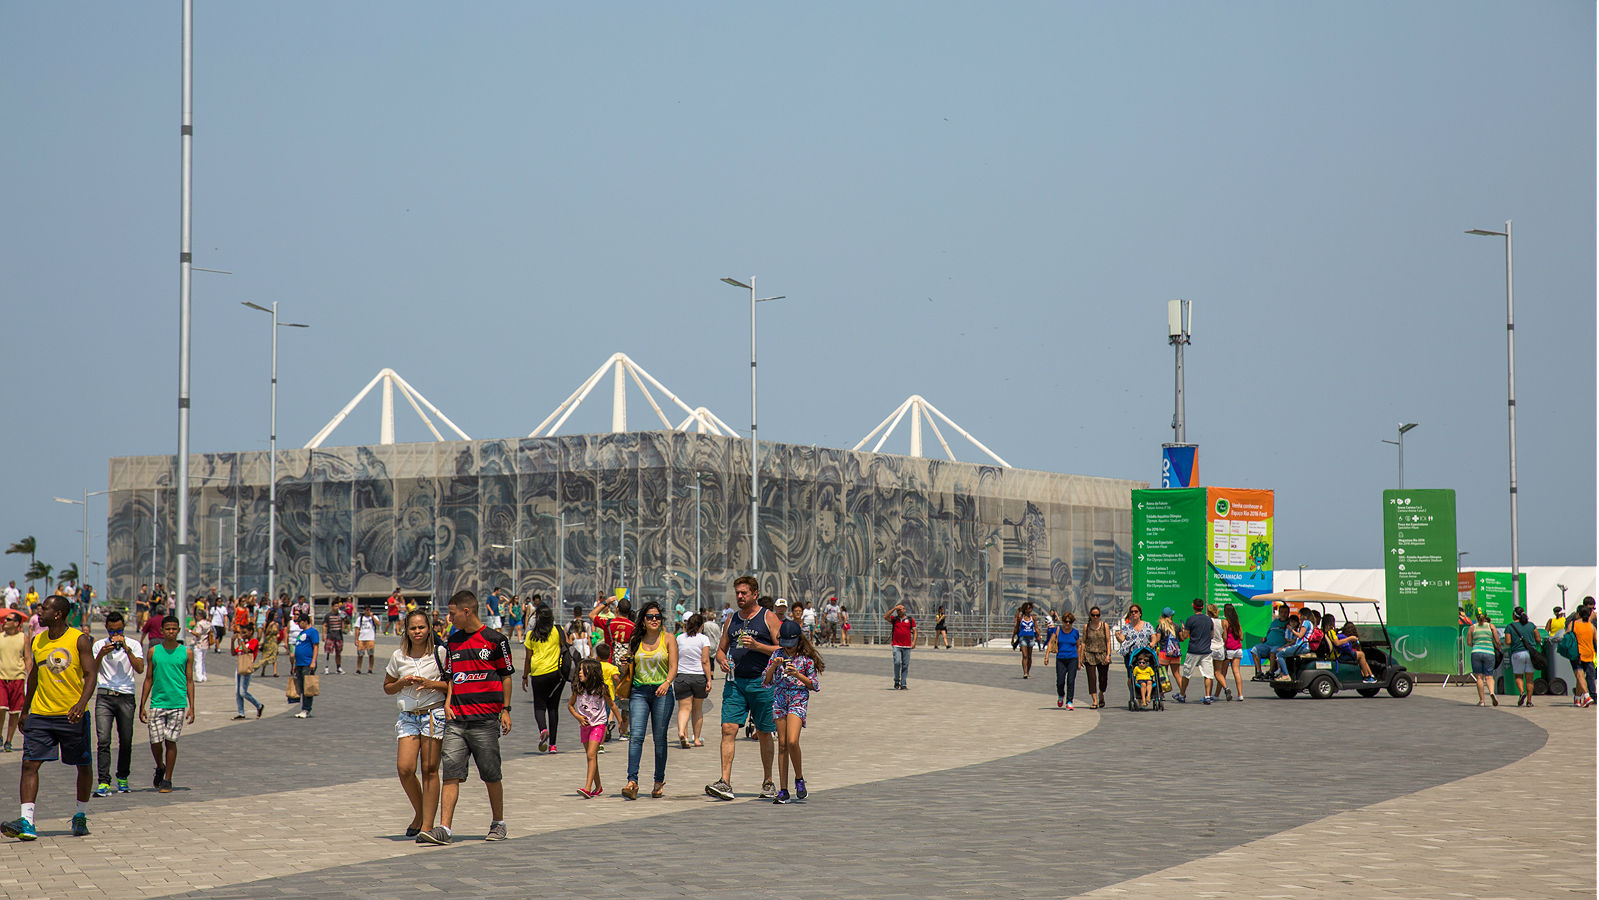 Rio 2016 Paralympic Games – feel the energy